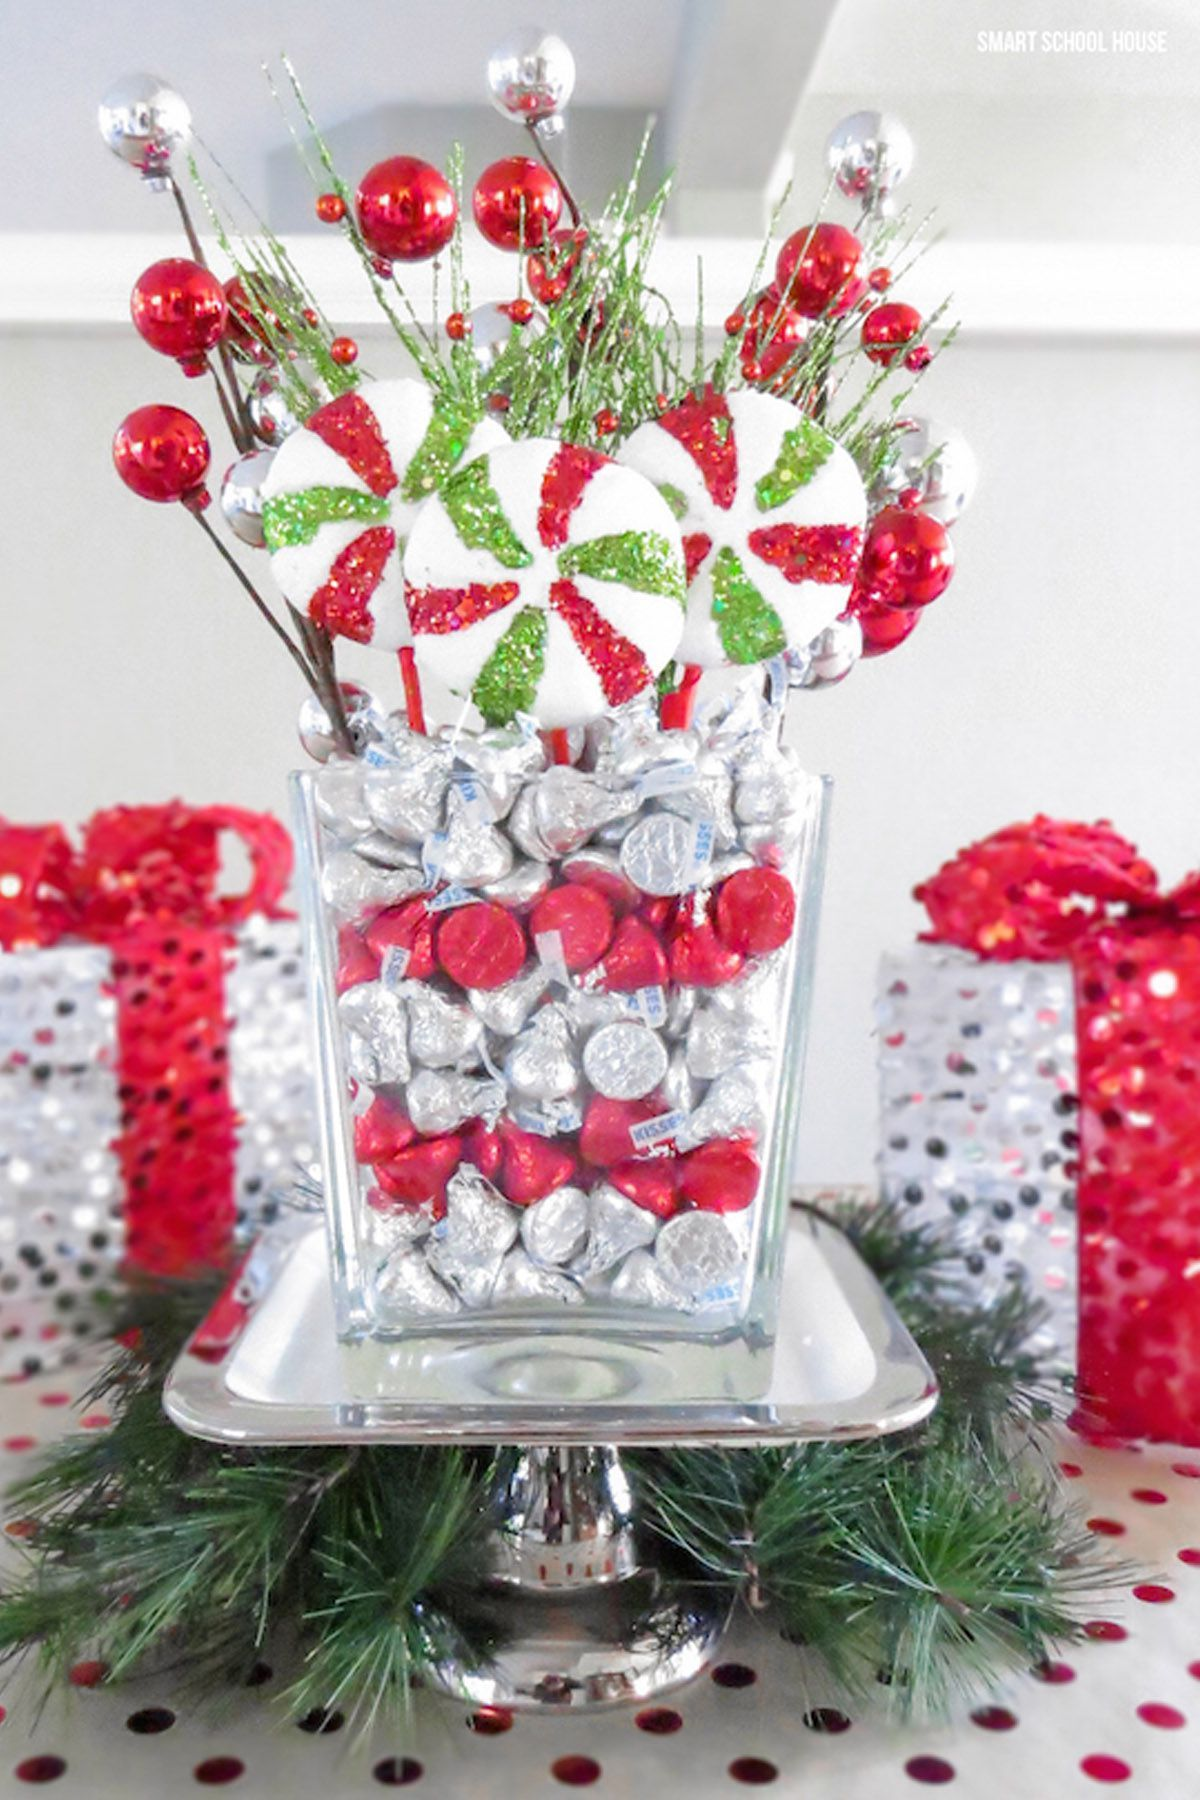 32 Festive Christmas Table Decorations To Brighten Up Your Feast Christmas Table Centerpieces Christmas Centerpieces Diy Christmas Table Decorations Centerpiece